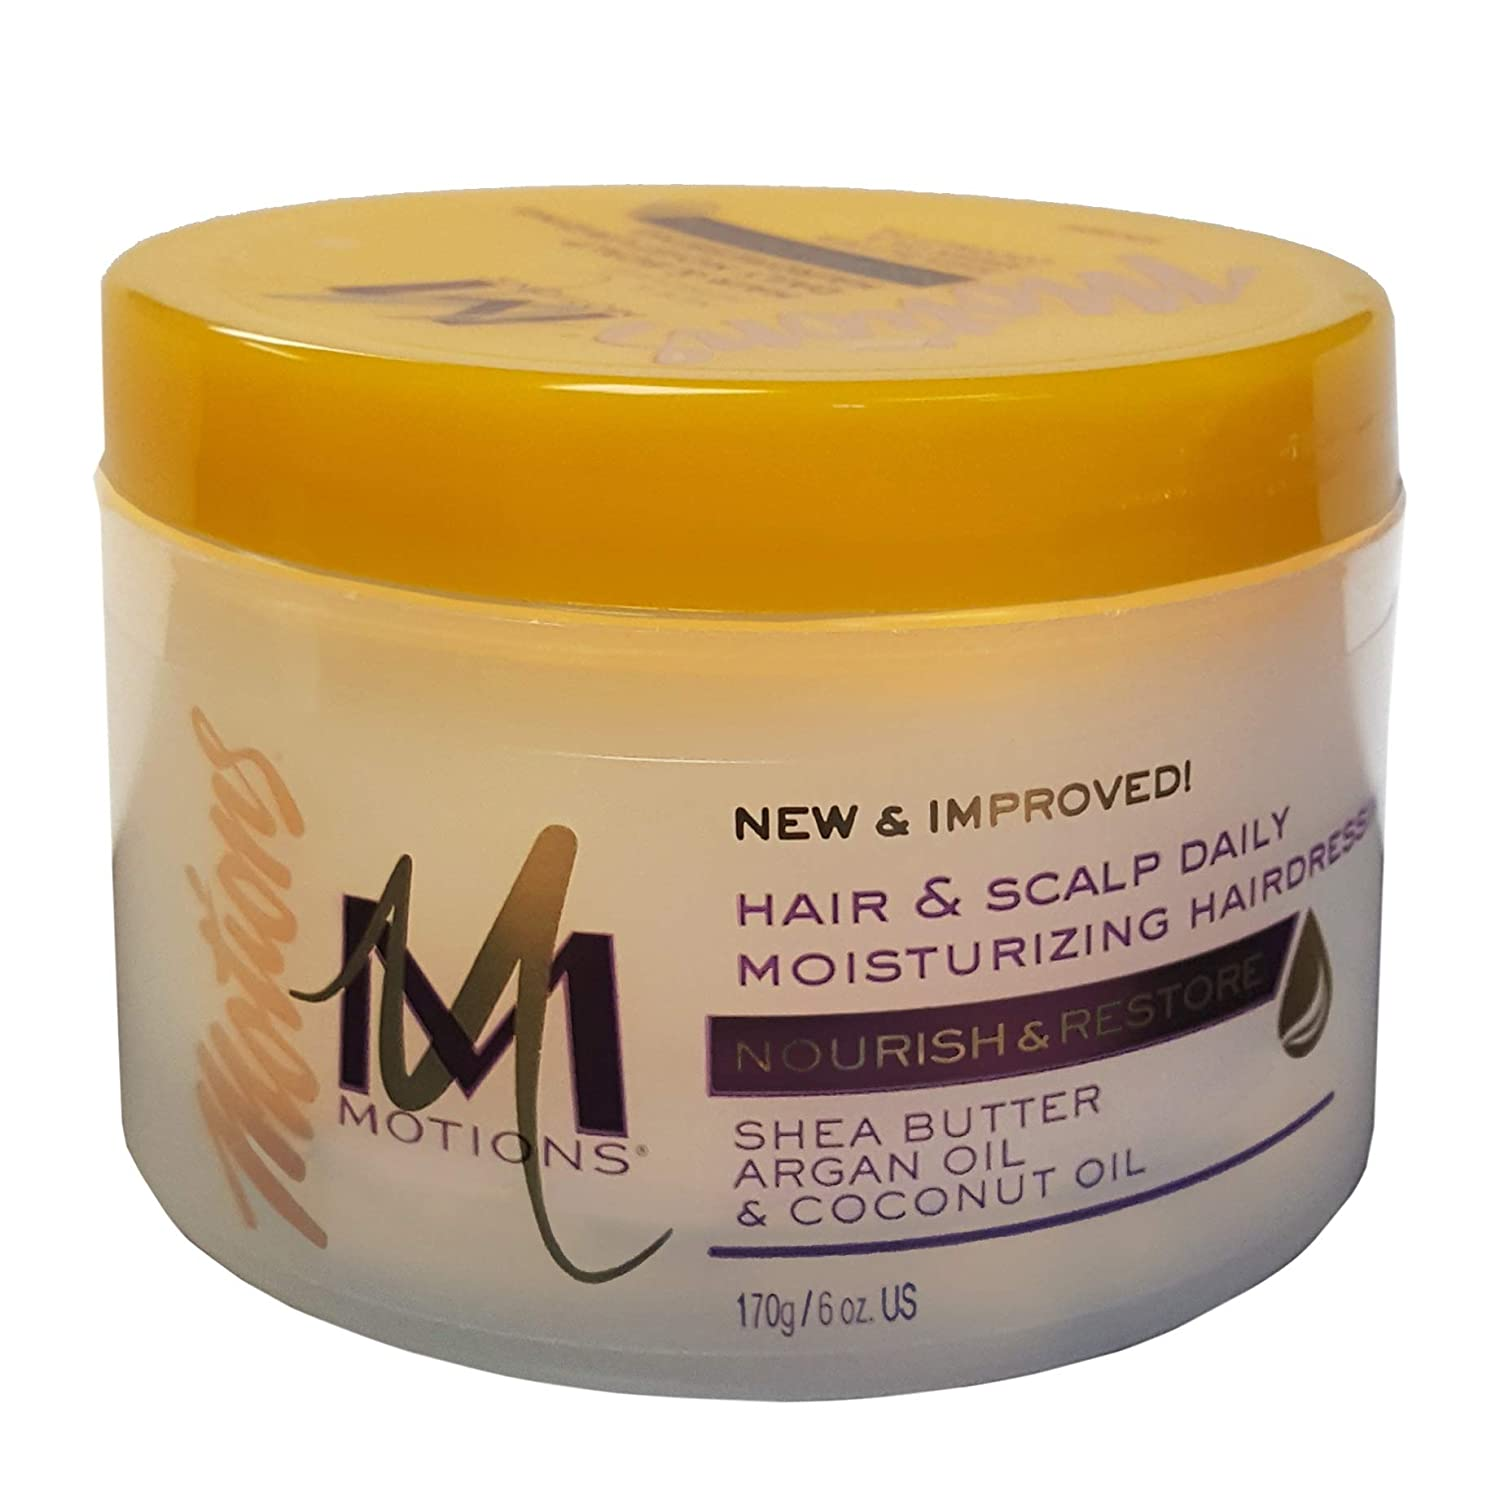 Motions Nourish & Care, Hair & Scalp Daily Moisturizing Hairdressing 6 oz (2 pack)